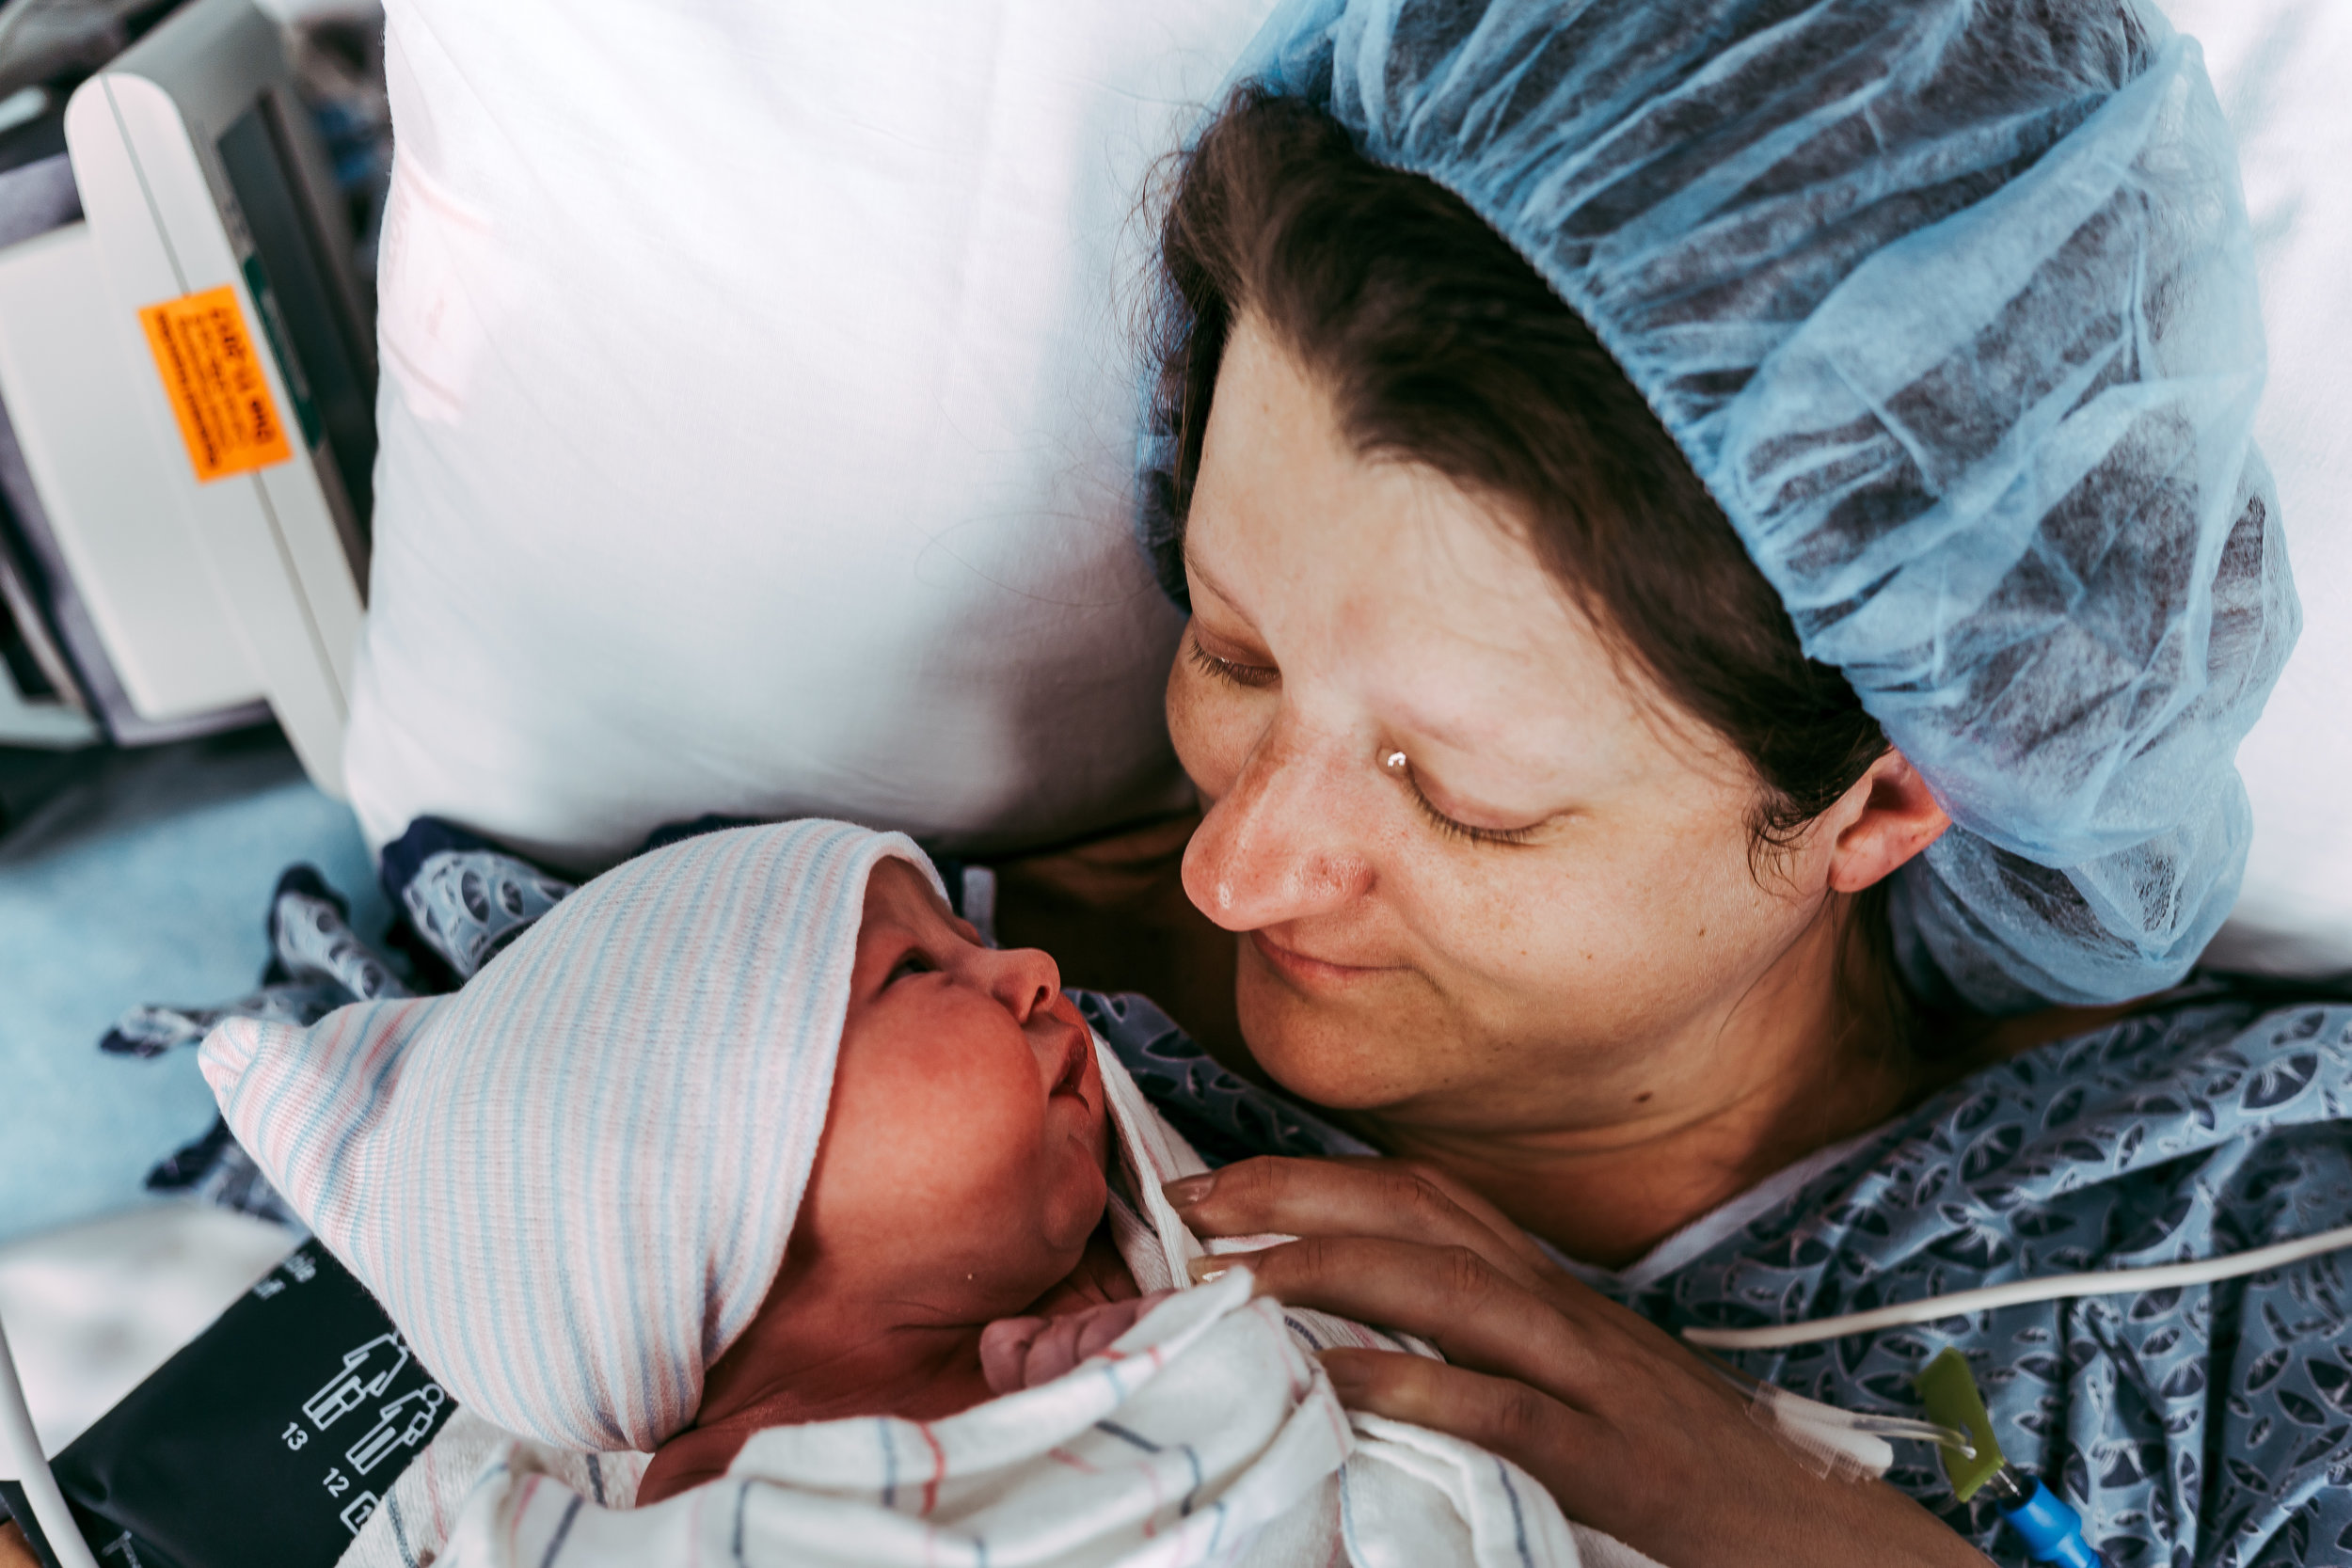 mother and baby gaze into each other's eyes following cesarean birth at Virginia Baptist Hospital in Lynchburg, Virginia